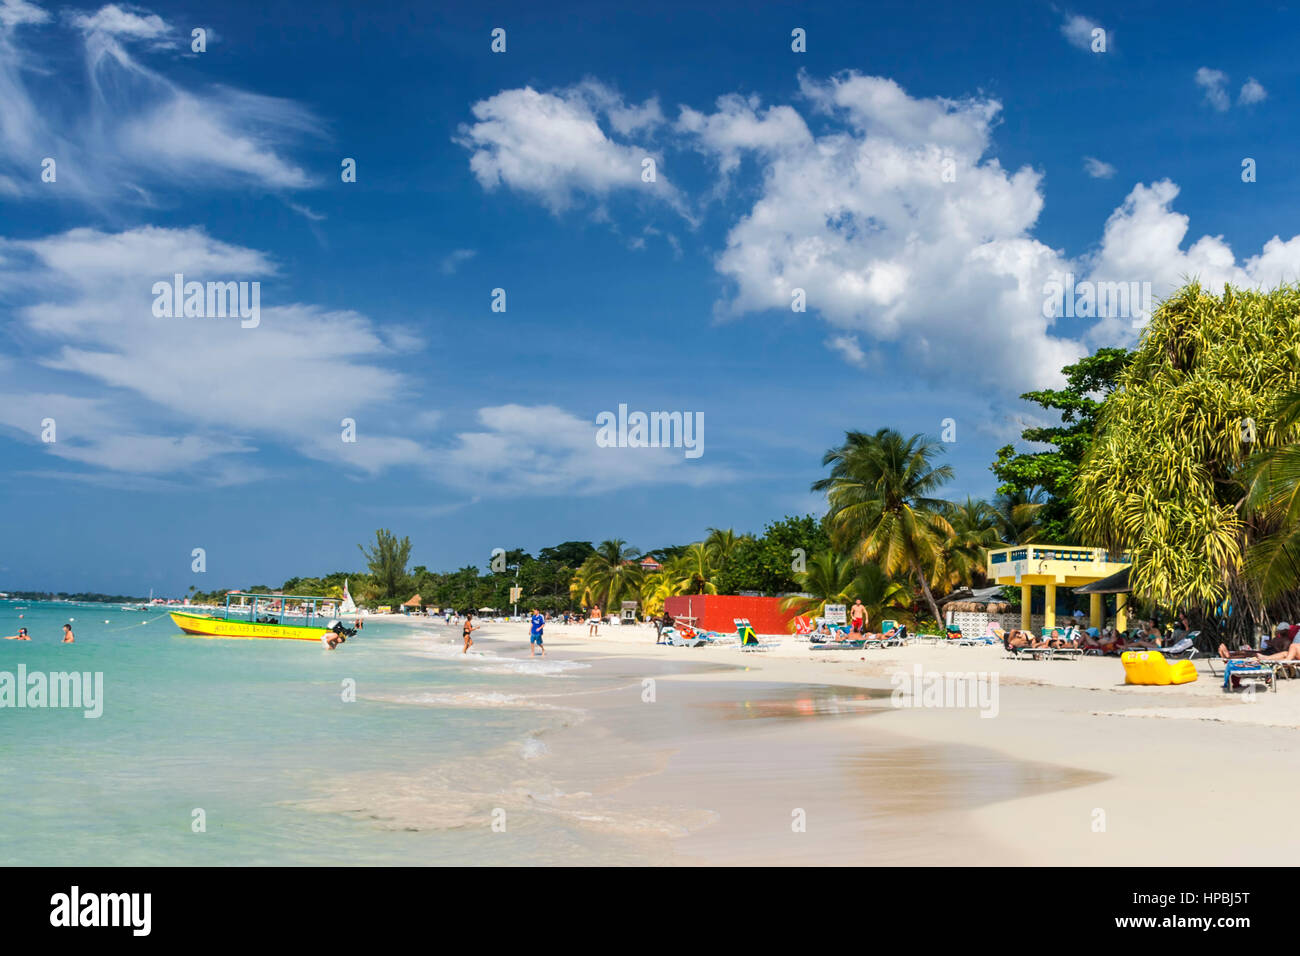 Jamaica Negril beach , West Indies, carribean island Stock Photo